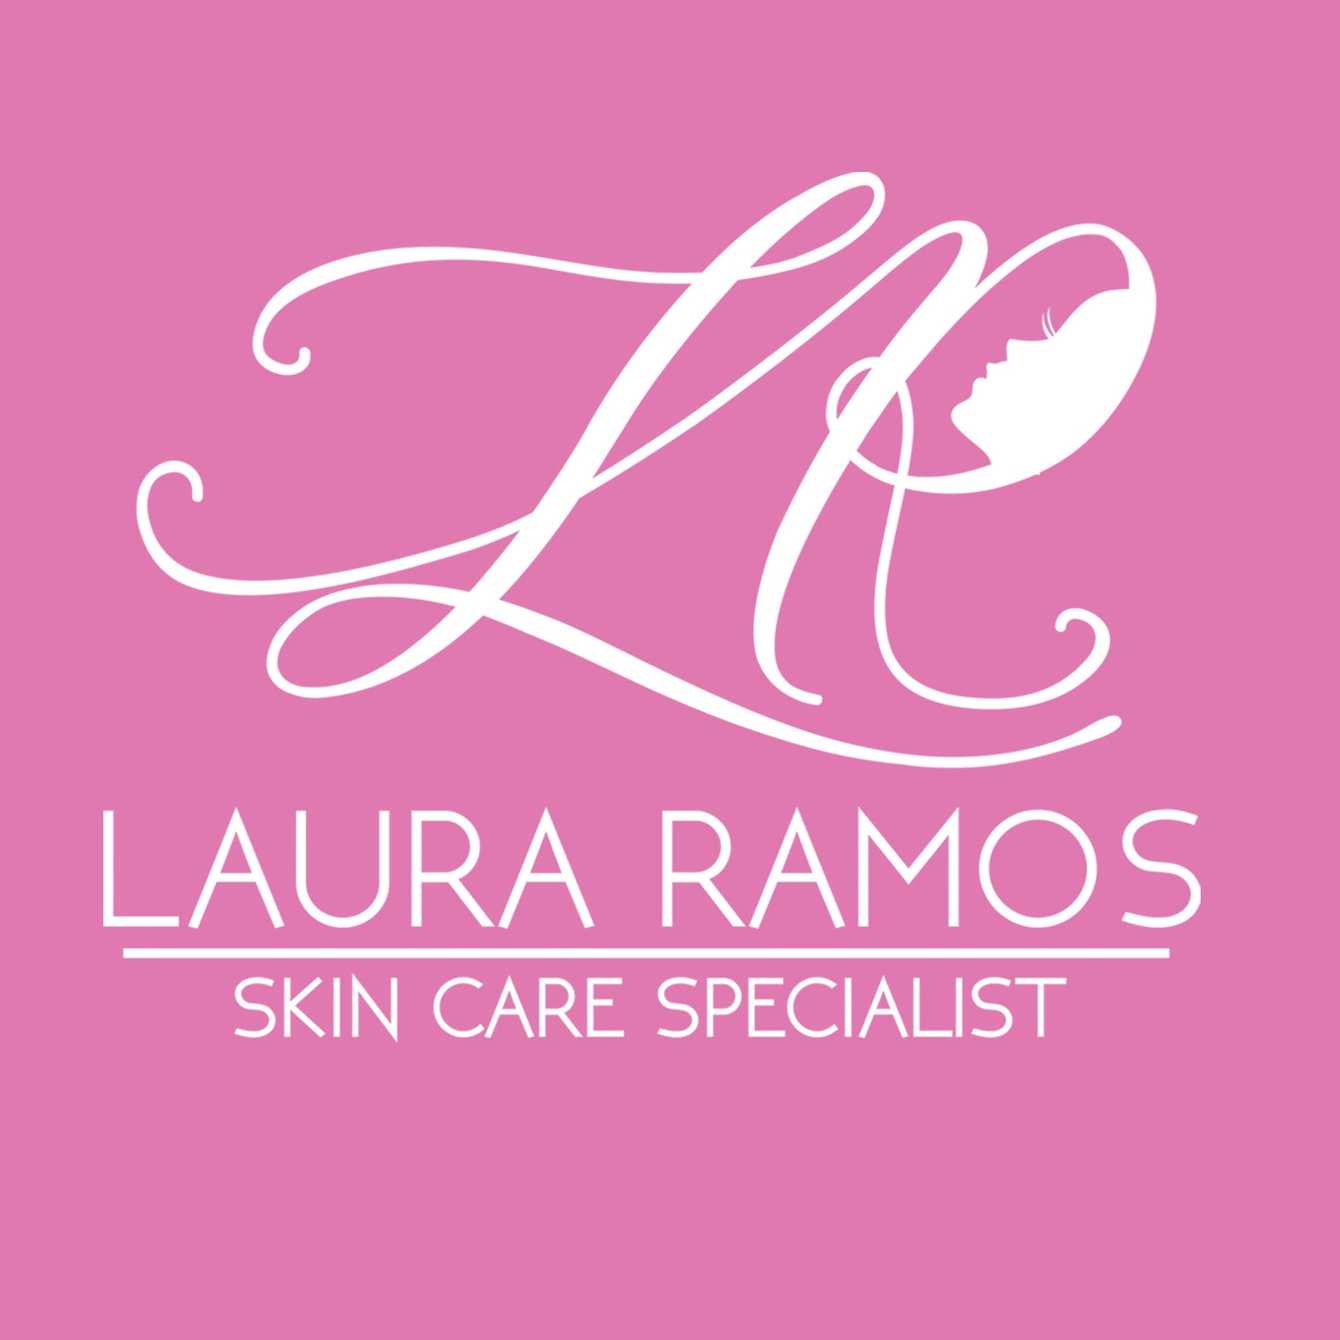 Laura Ramos Skin Care Specialist